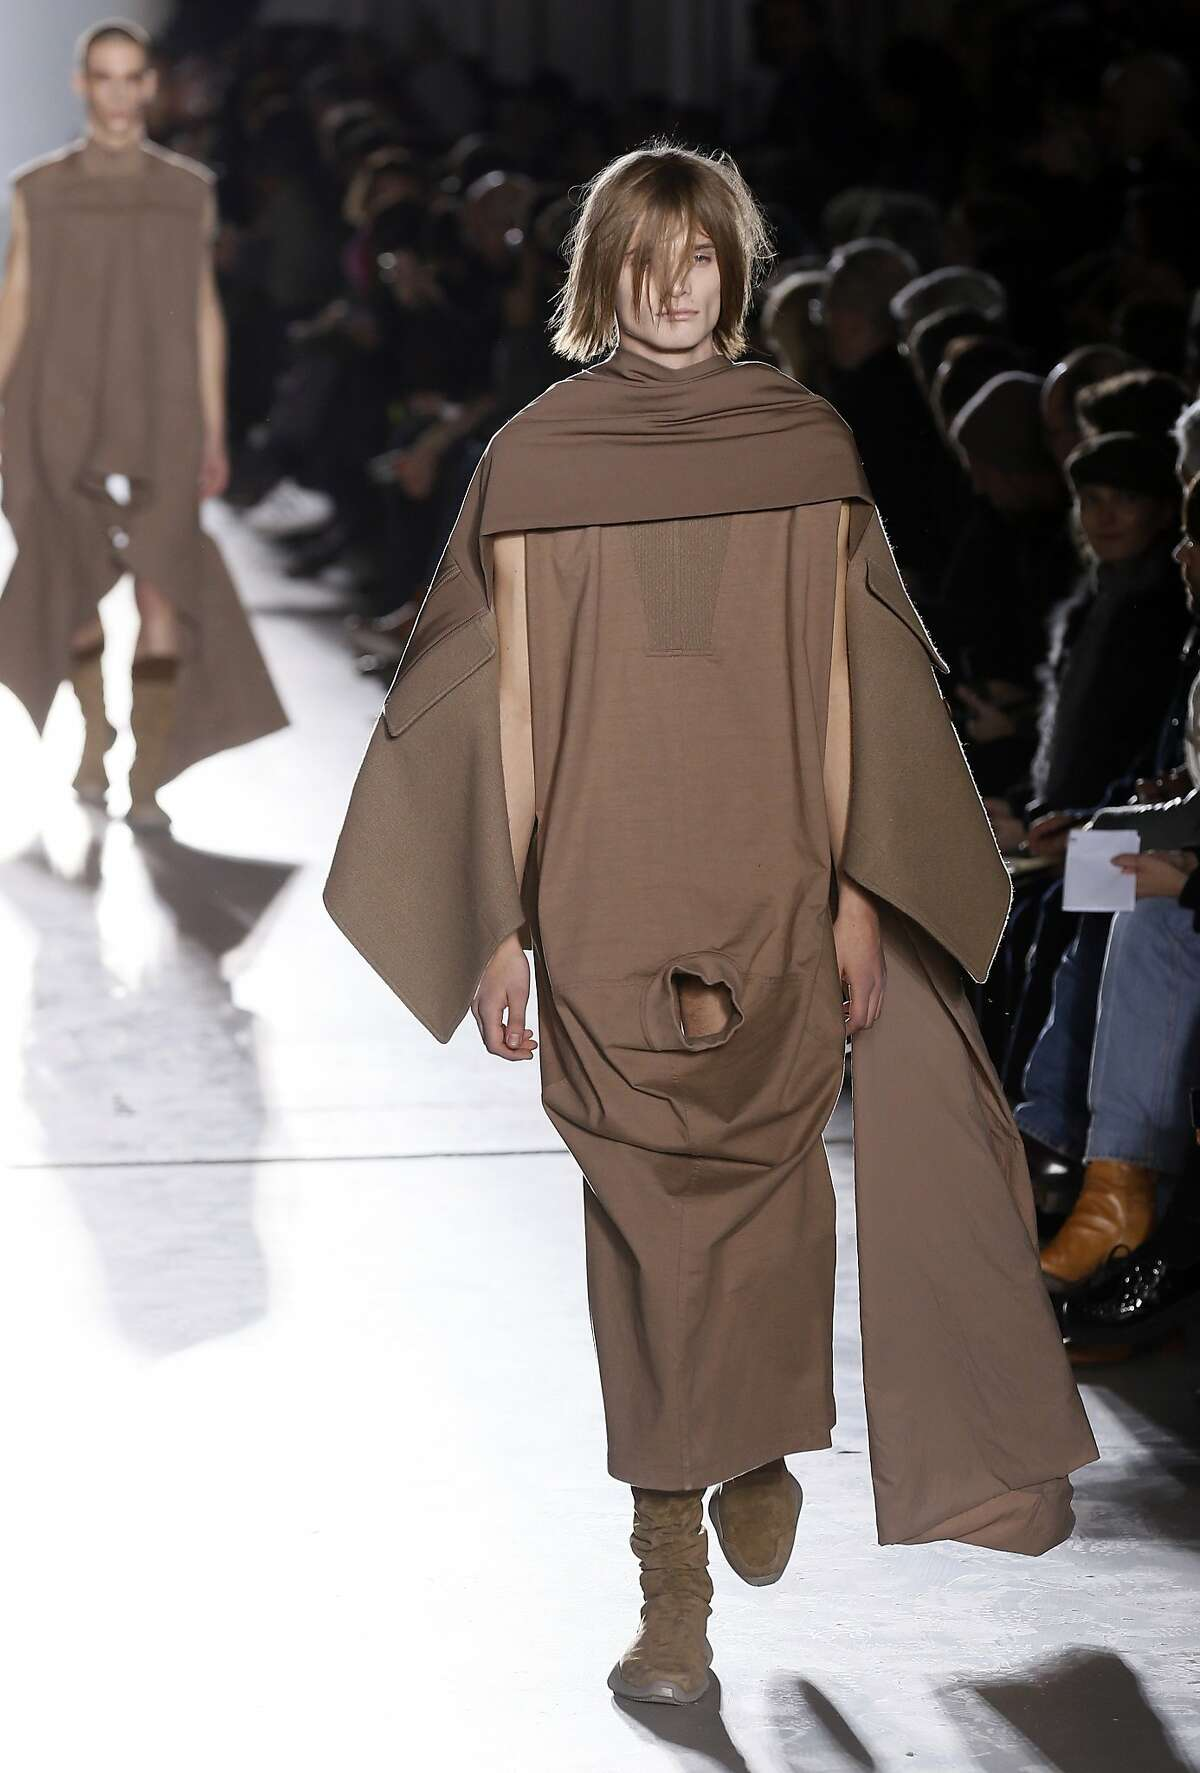 THERE'S A PLACE IN FRANCE WHERE THE YOUNG MEN DON'T WEAR PANTS: A show by U.S. fashion designer Rick Owens caused a stir in Paris when some of the models wore outfits with strategically placed holes that revealed their genitals.